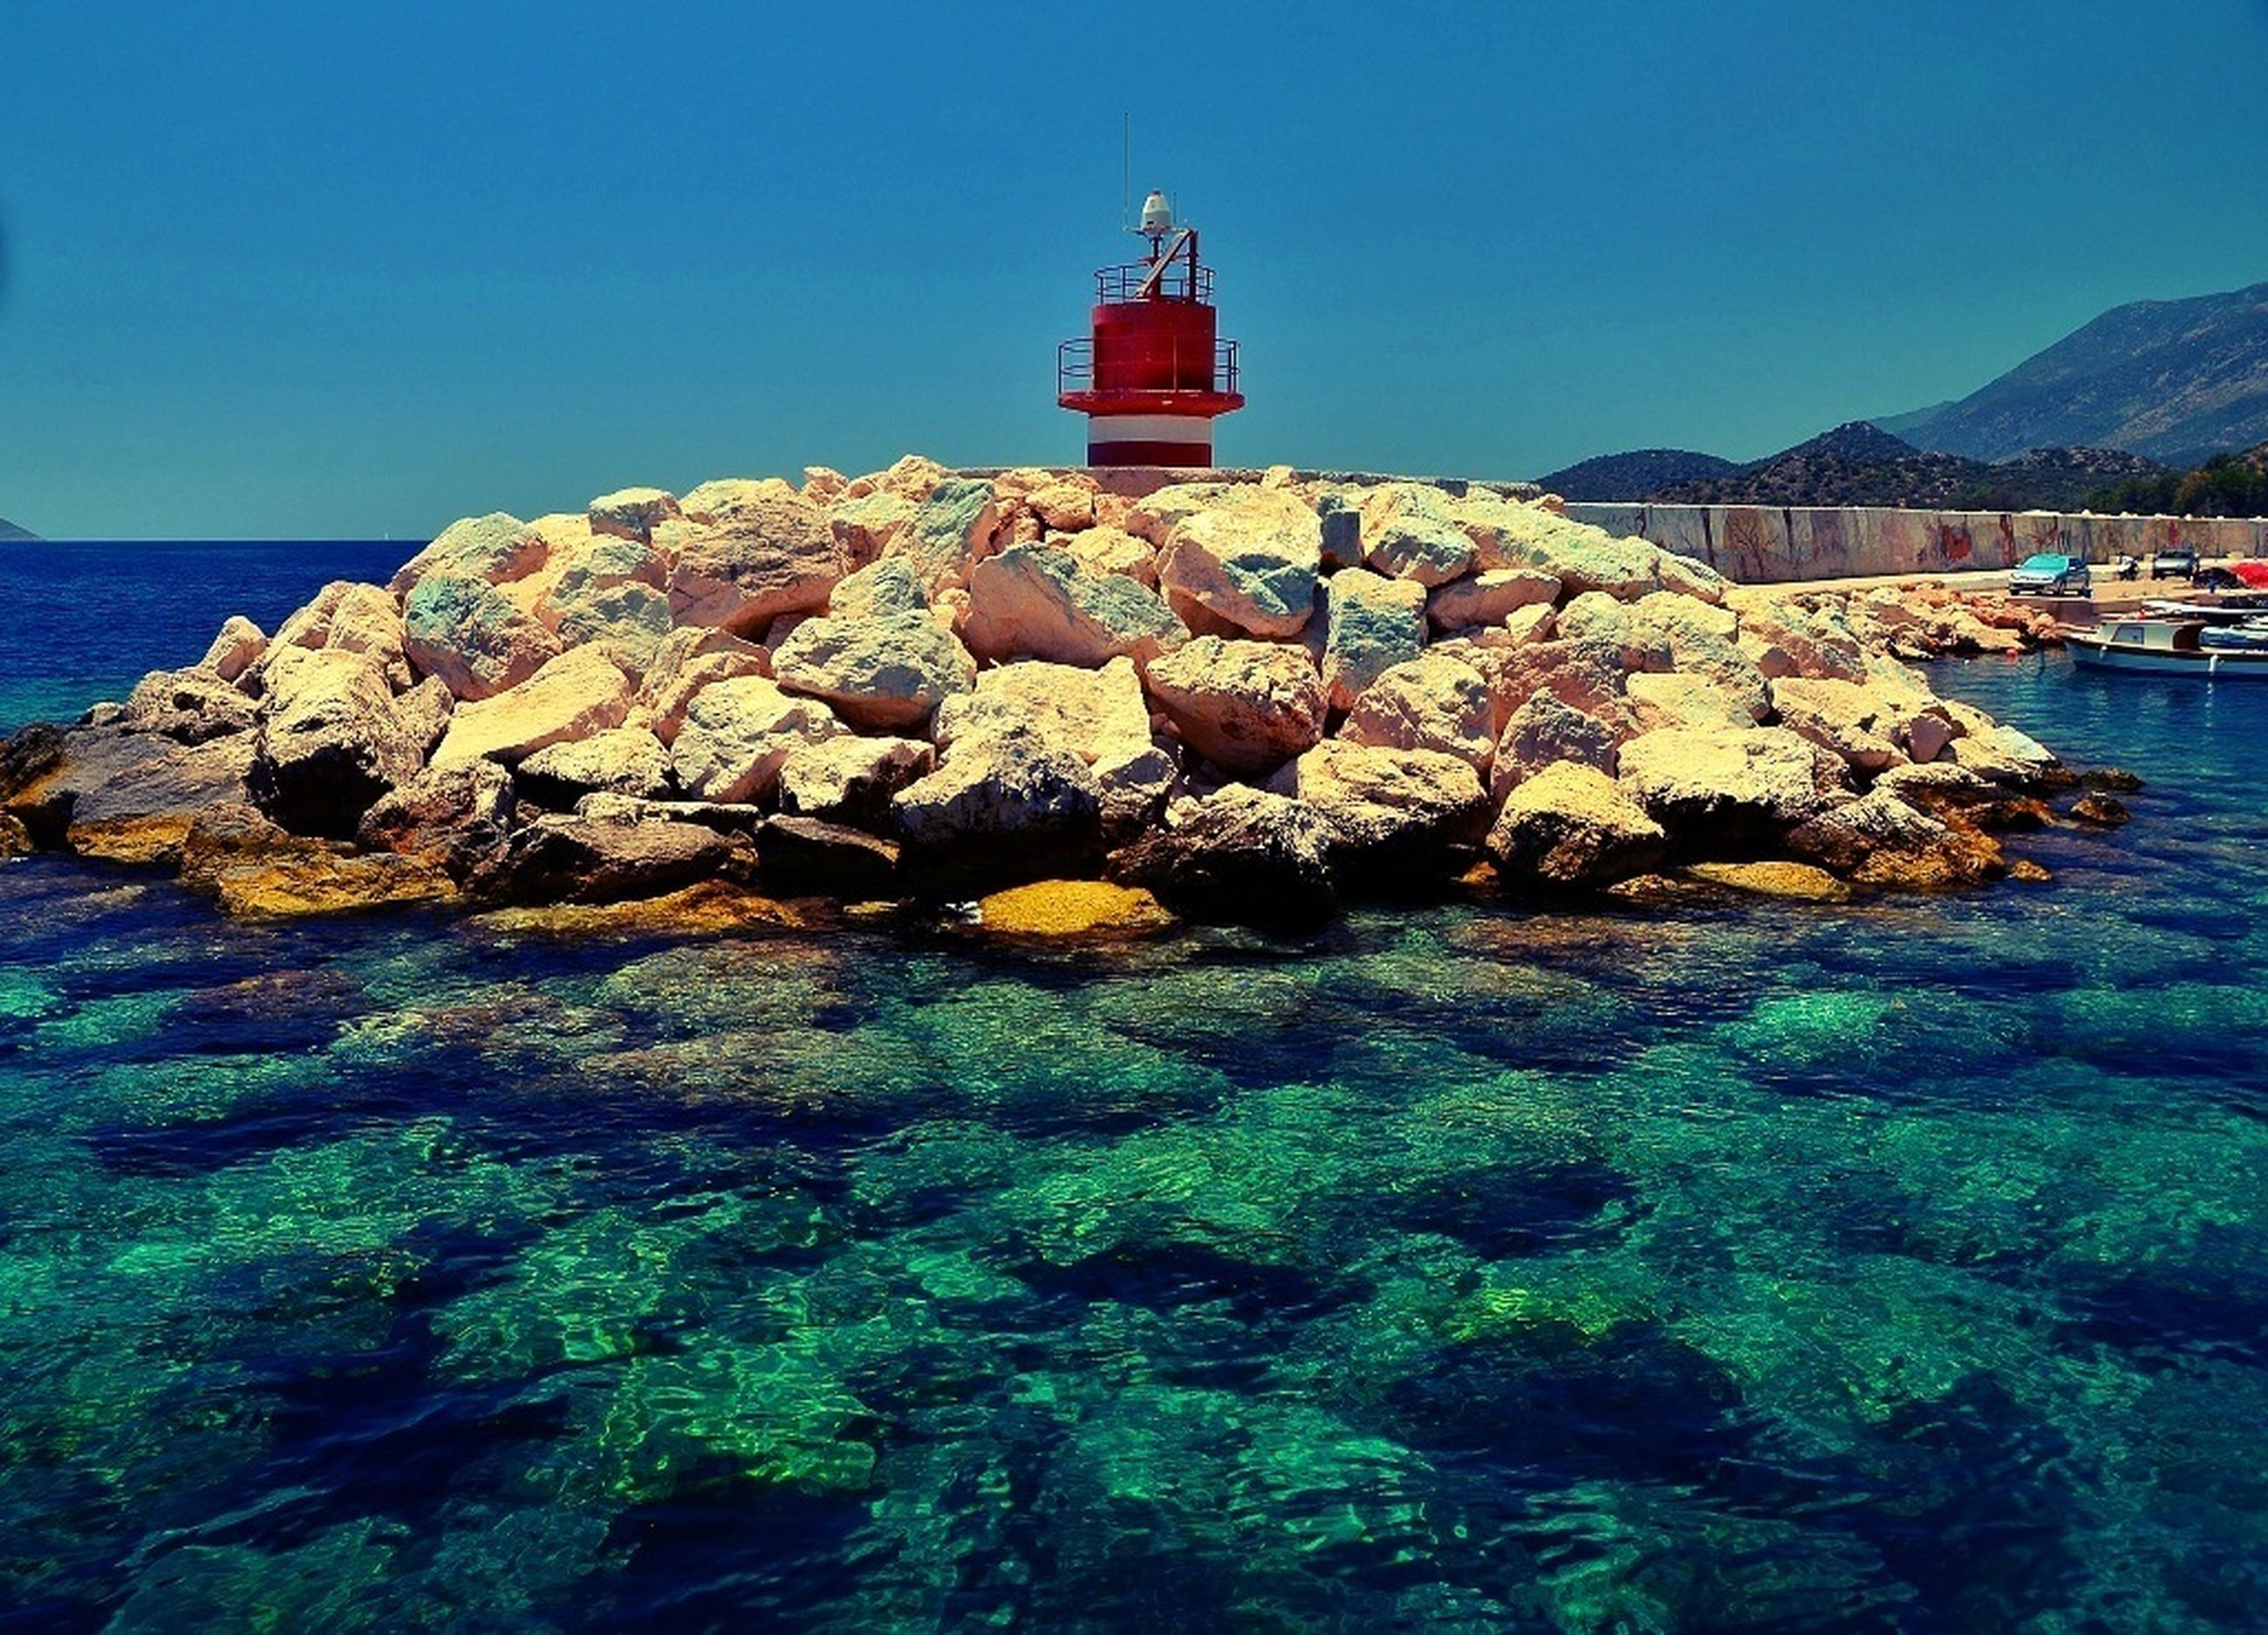 water, sea, clear sky, rock - object, blue, rock, rock formation, lighthouse, tranquility, tranquil scene, built structure, mountain, nature, scenics, architecture, guidance, building exterior, beauty in nature, horizon over water, day